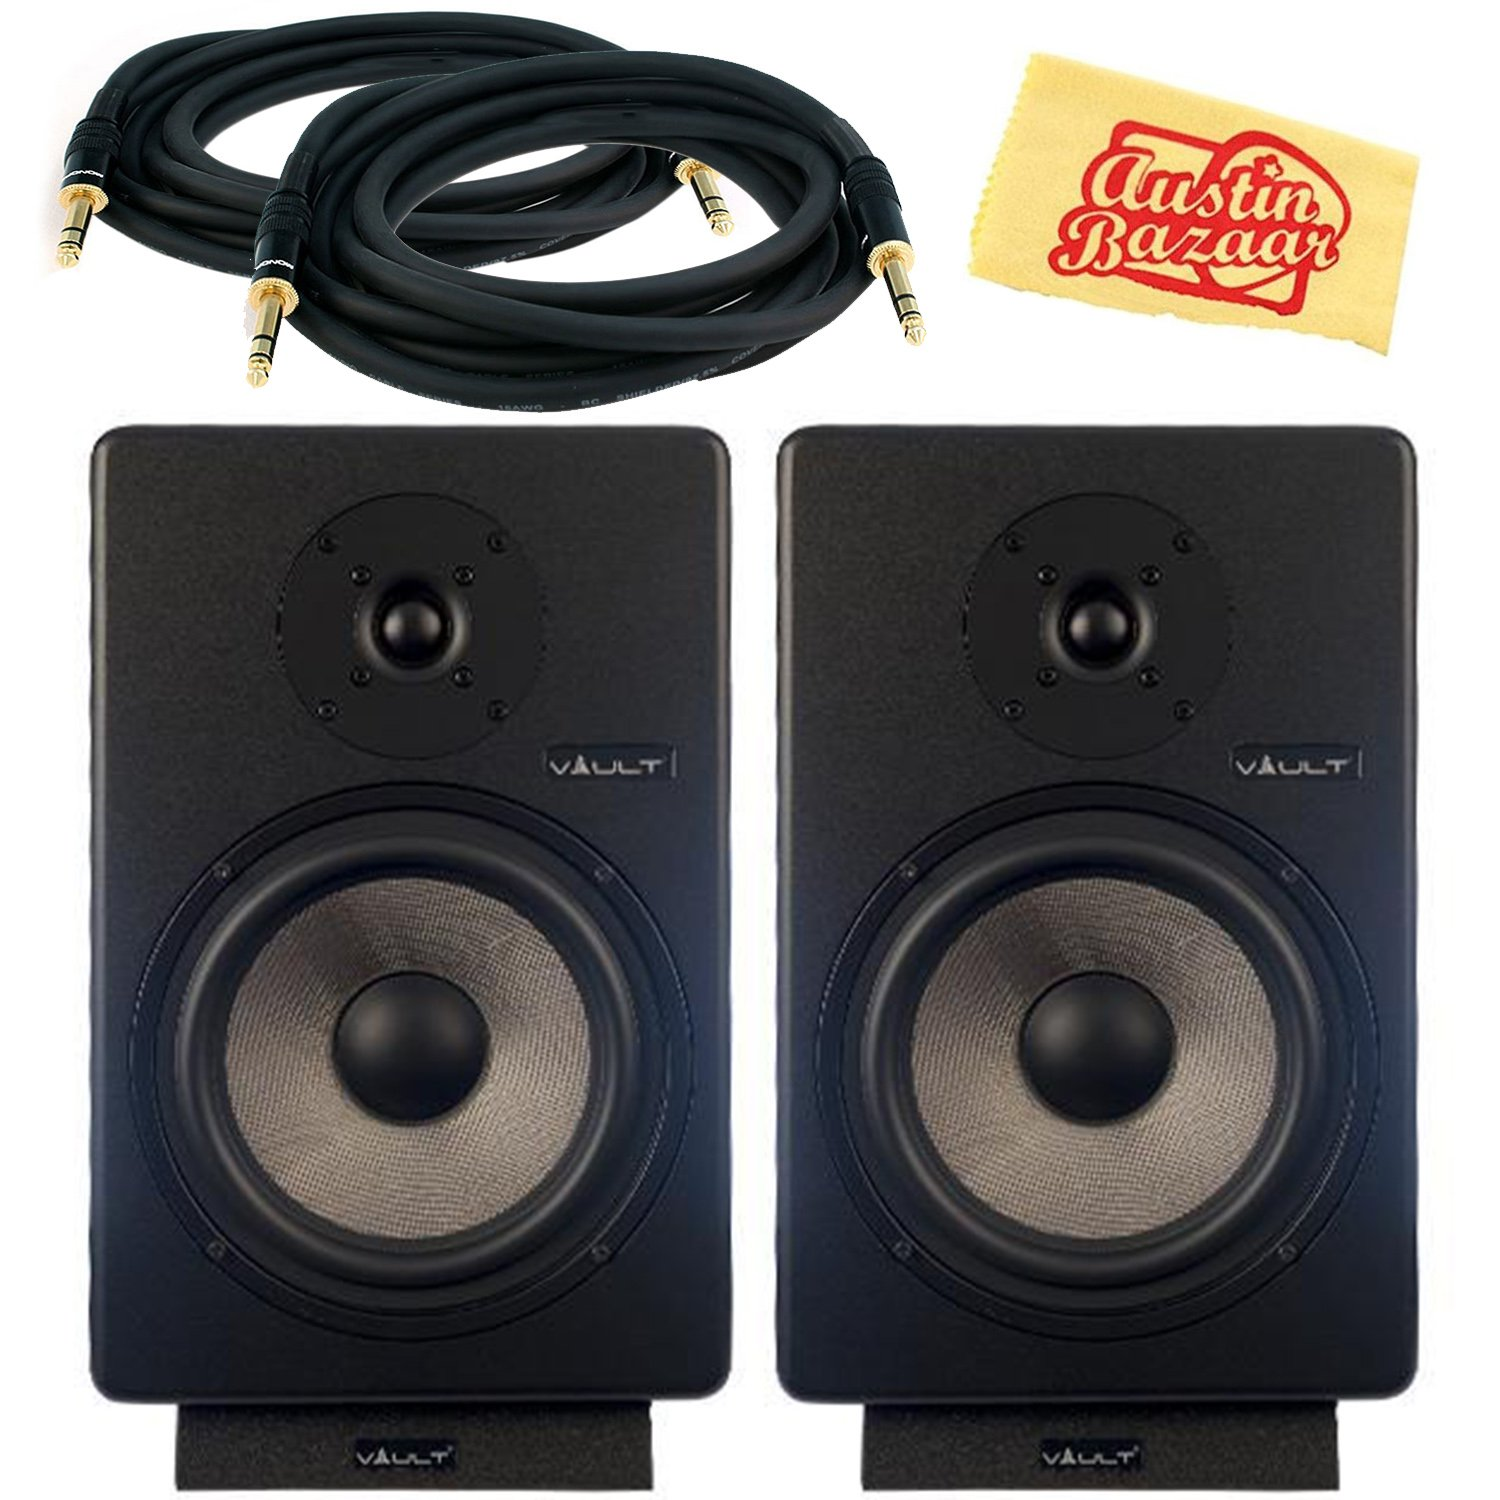 Vault C8 8-Inch Powered Studio Reference Monitor Pair Bundle with 2 Monitors, Cables, and Austin Bazaar Polishing Cloth